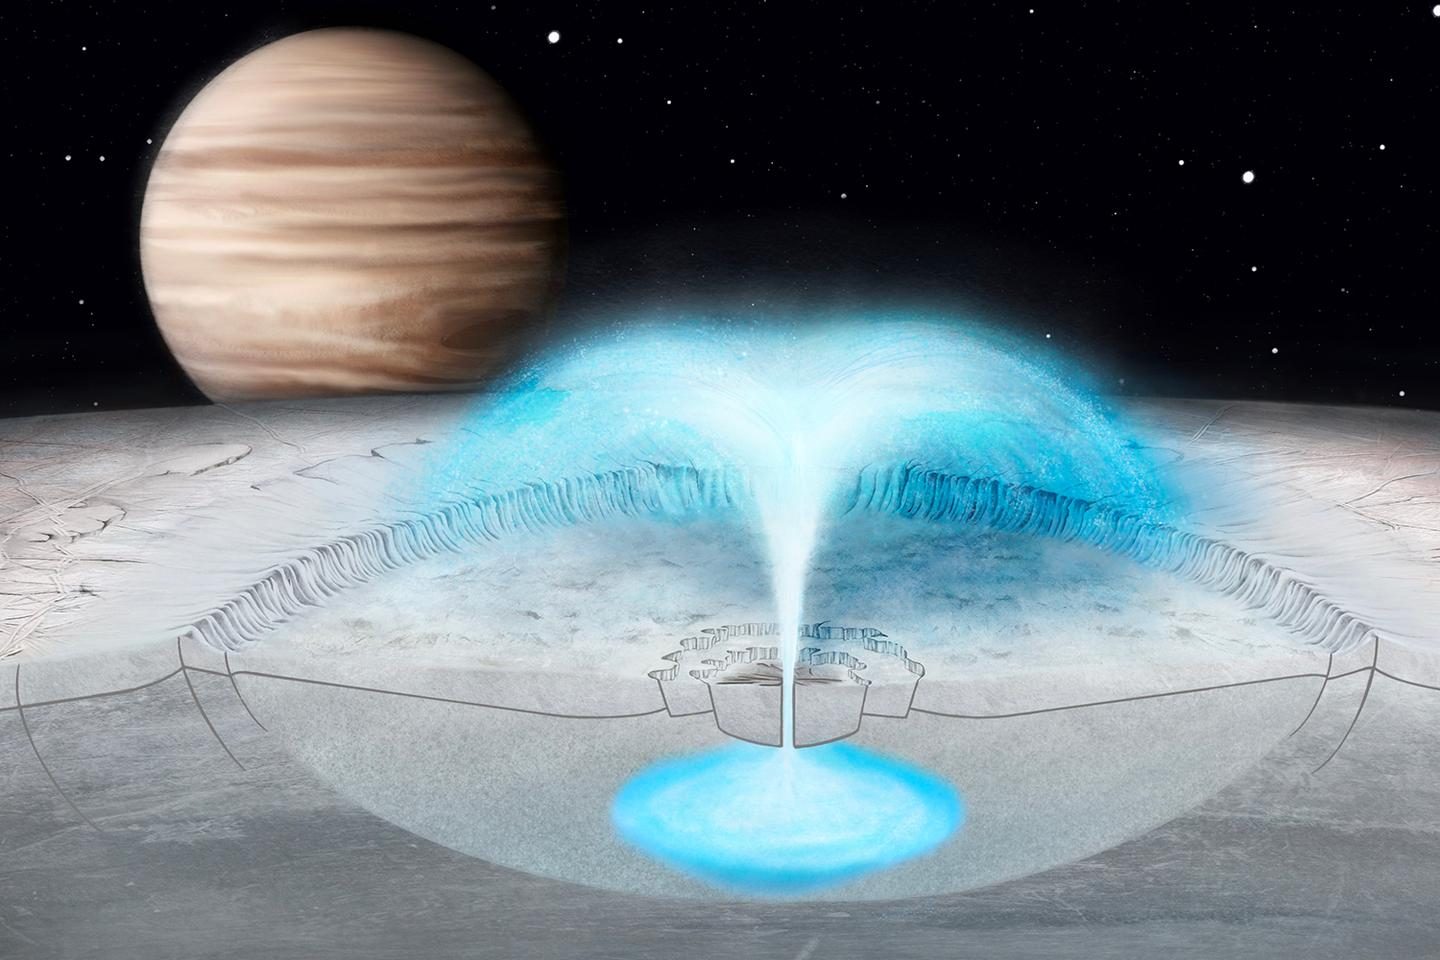 An artist's representation of a plume erupting from a shallow pocket of briny water below the icy surface of Europa